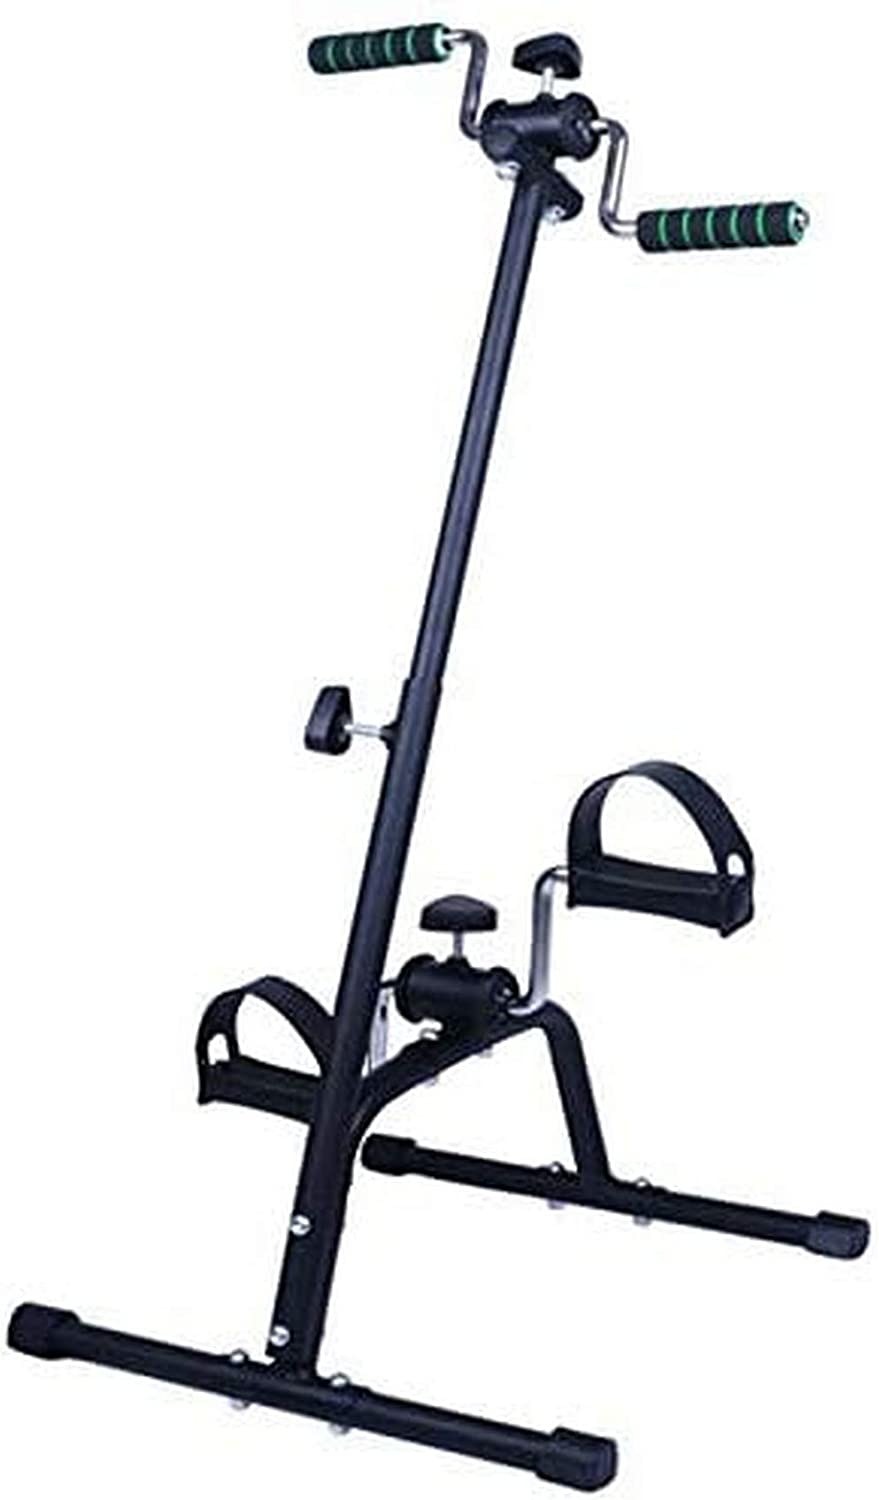 JFFFFWI Foot Exerciser for Elderly, Exercise Bike Stationary,Work Out While Sitting, for Use at Home, Work Or Clinic, Easy Exercise, Improve Blood Circulation